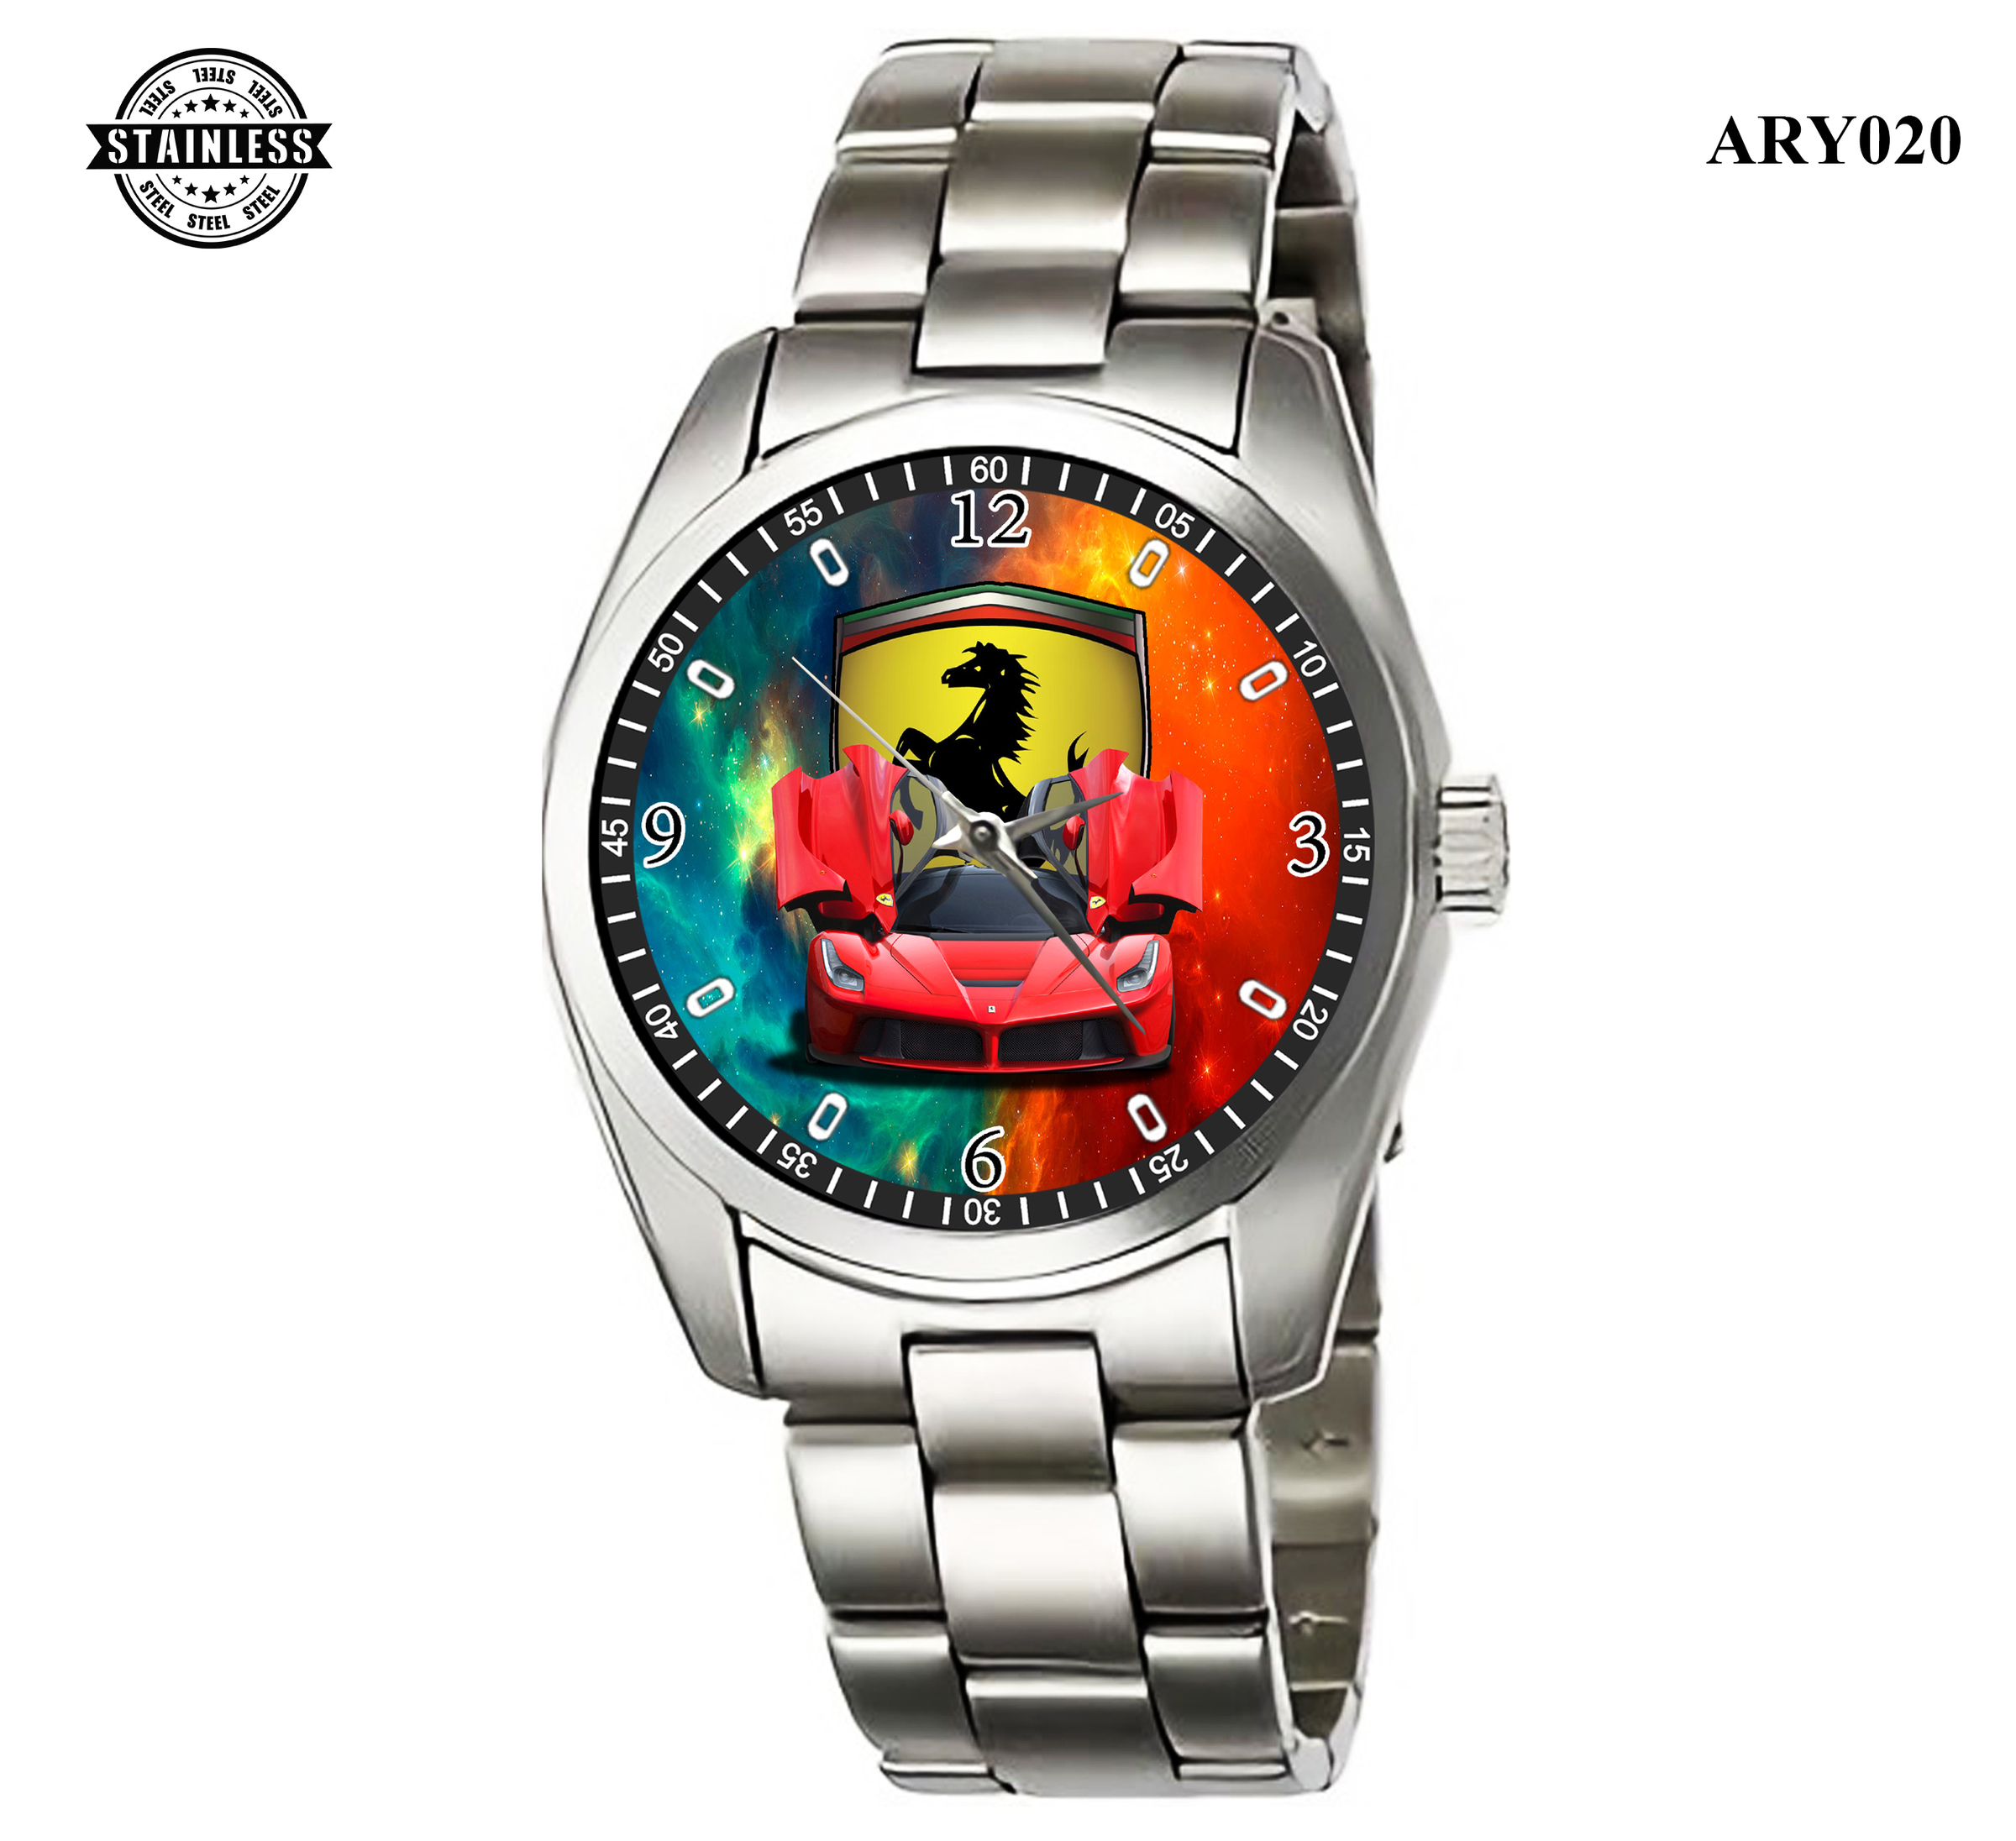 ARY020_Rare Reloj!!Ferrari Men Car_ Sport Metal Waches.jpg